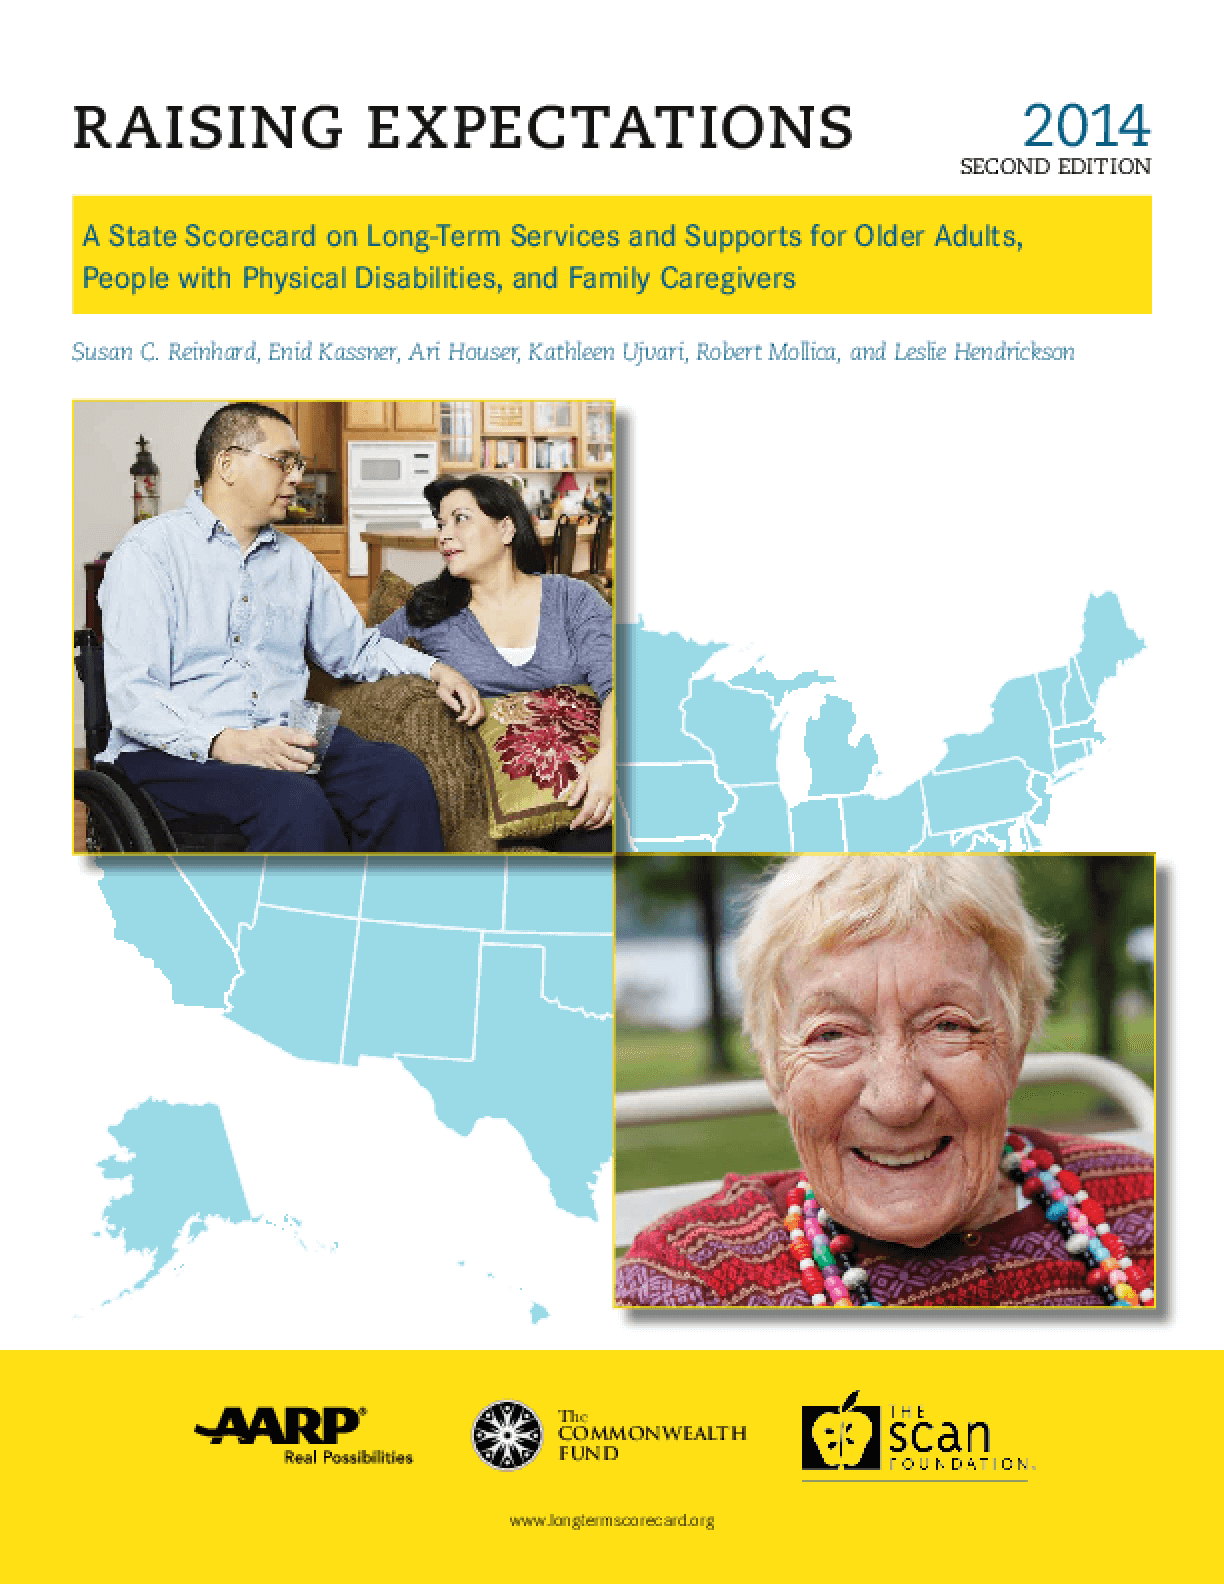 State Scorecard on Long-Term Services and Supports for Older Adults, People with Physical Disabilities, and Family Caregivers